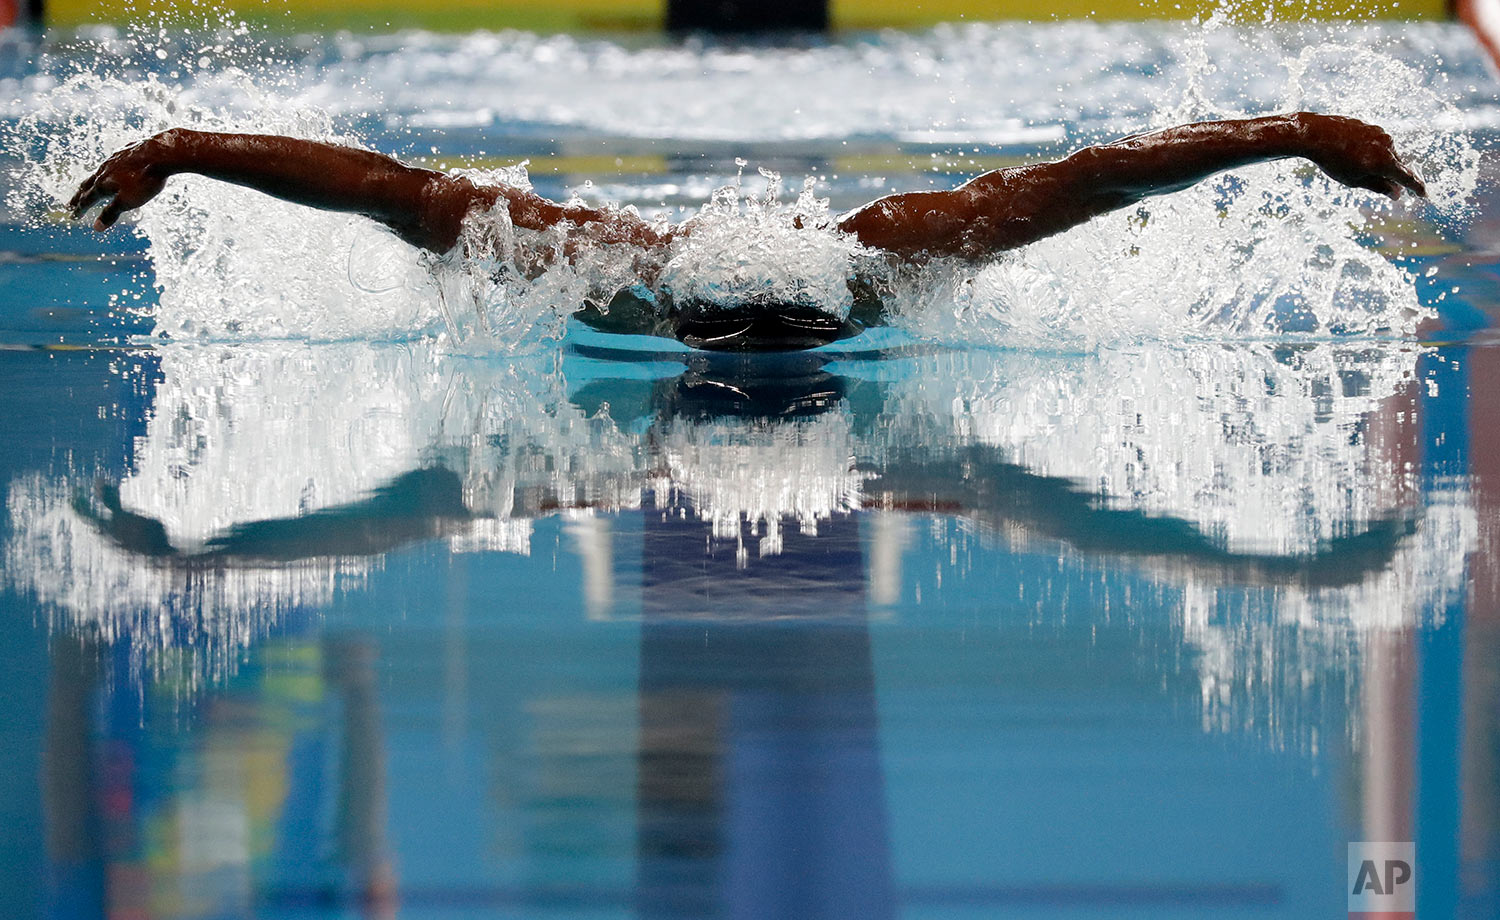 In this Wednesday, Aug. 22, 2018 photo, India's Sajan Prakash swims in his heat of the men's 100m butterfly during the swimming competition at the 18th Asian Games in Jakarta, Indonesia. (AP Photo/Lee Jin-man)